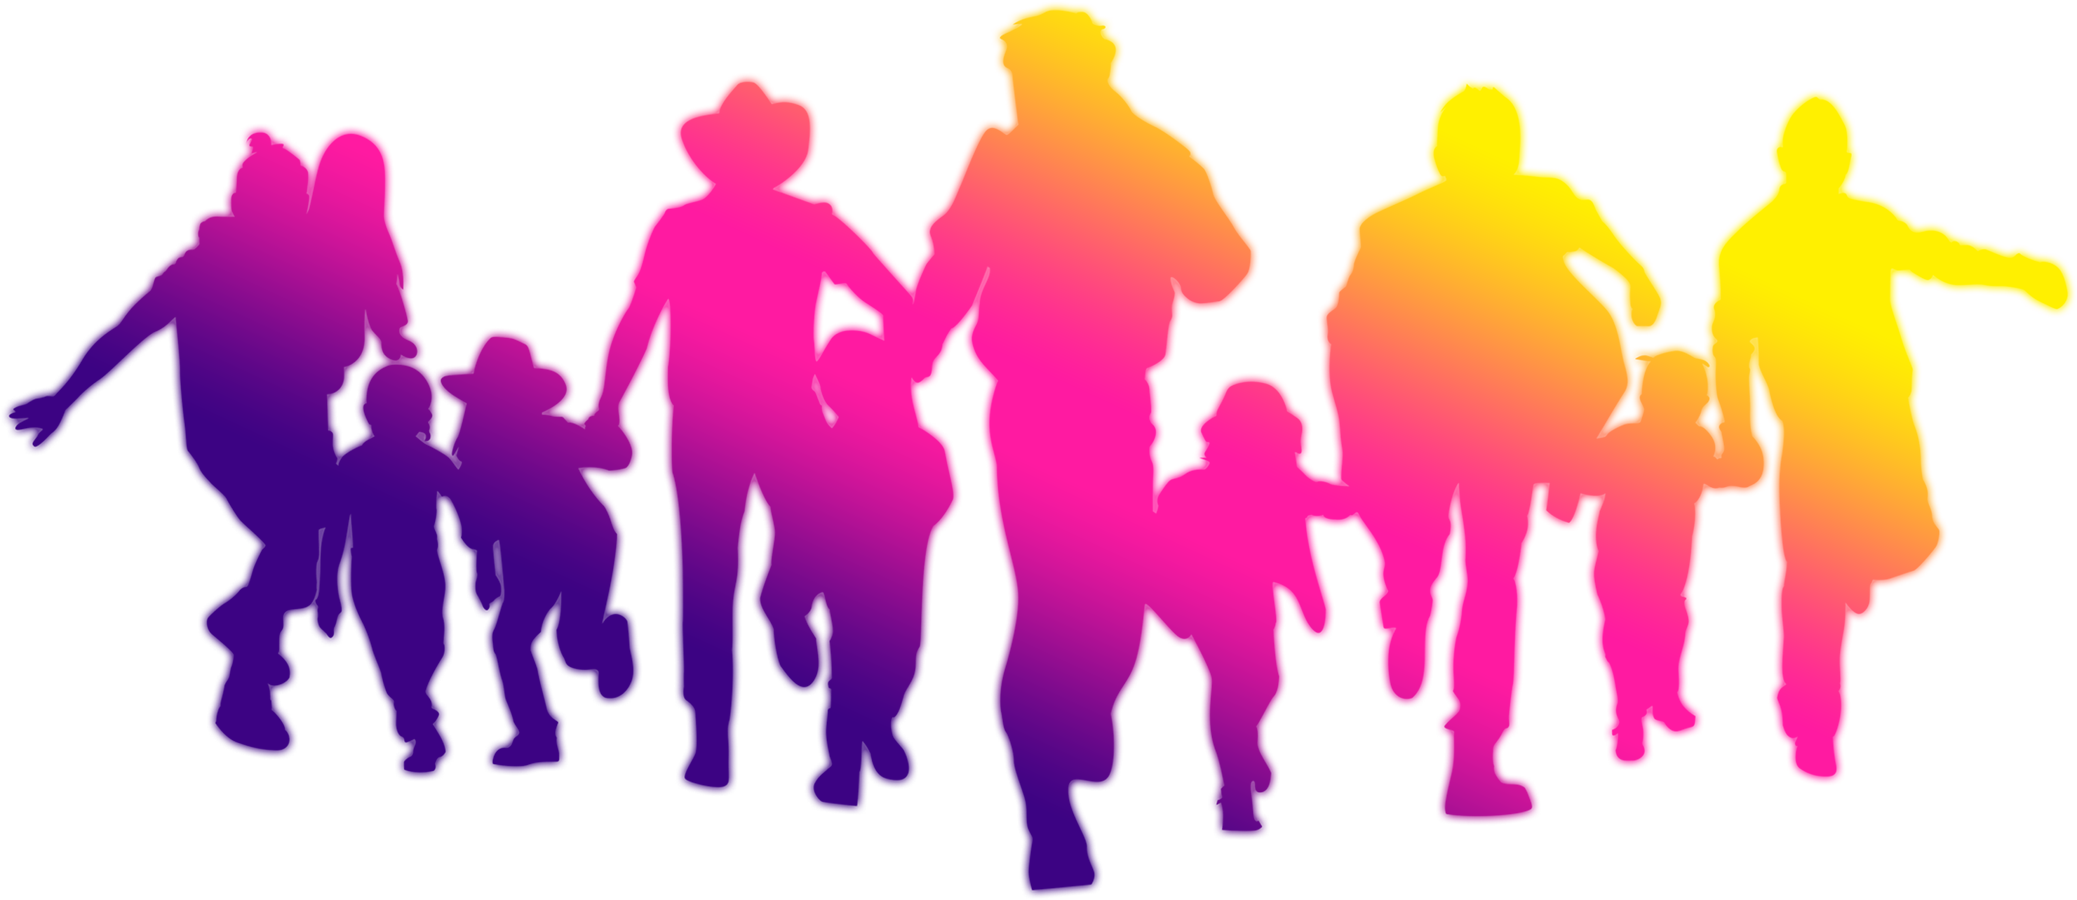 Family fun png. Download icon silhouette decorated